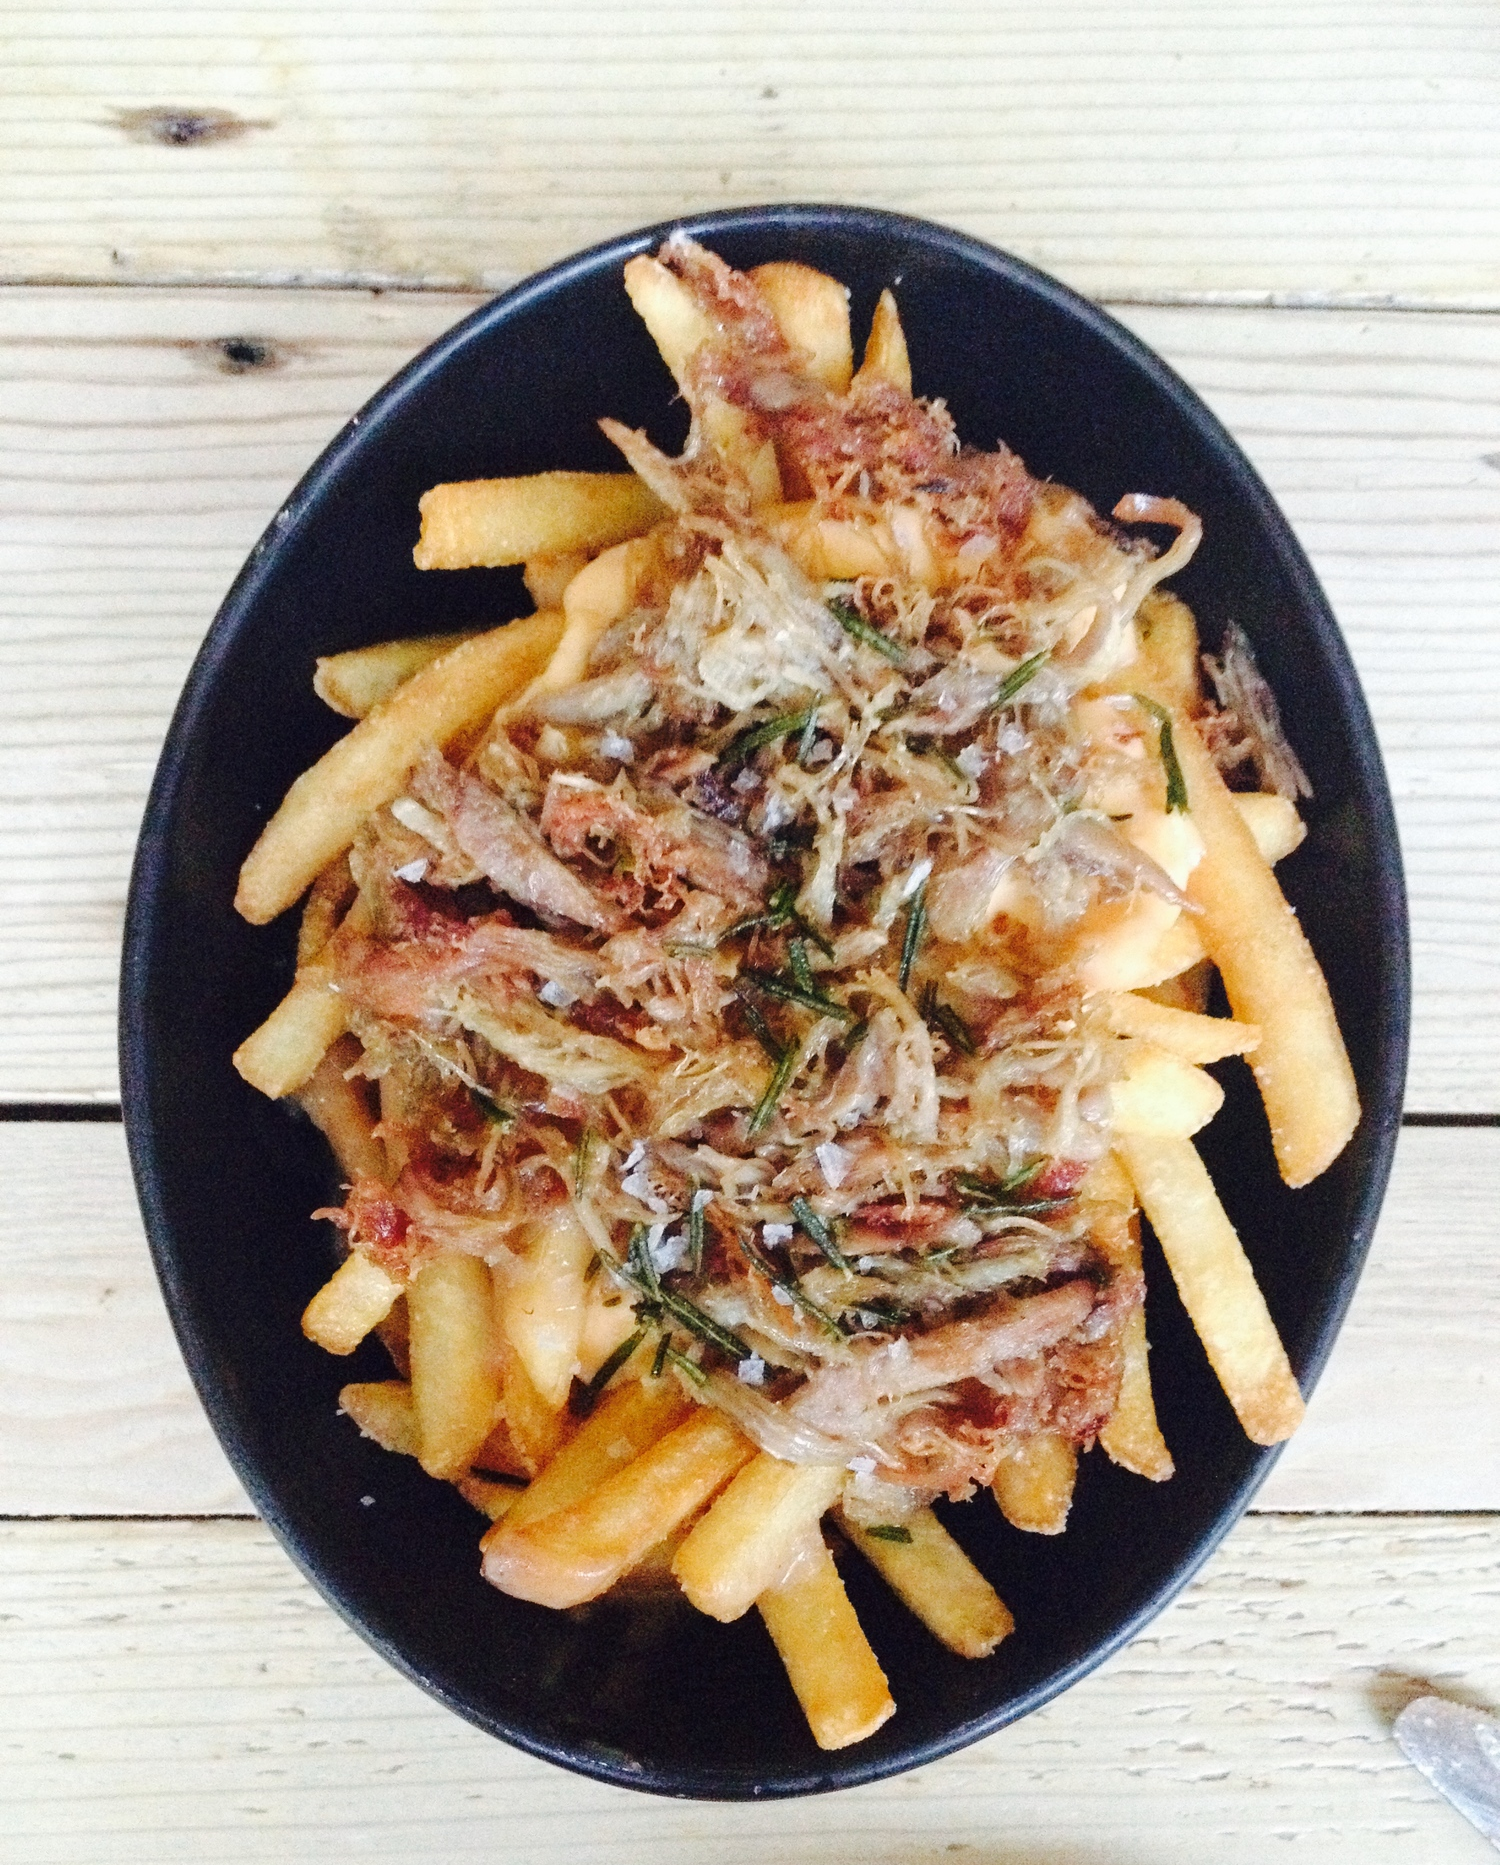 Duck confit poutine with gravy, cheddar mornay, and fried rosemary